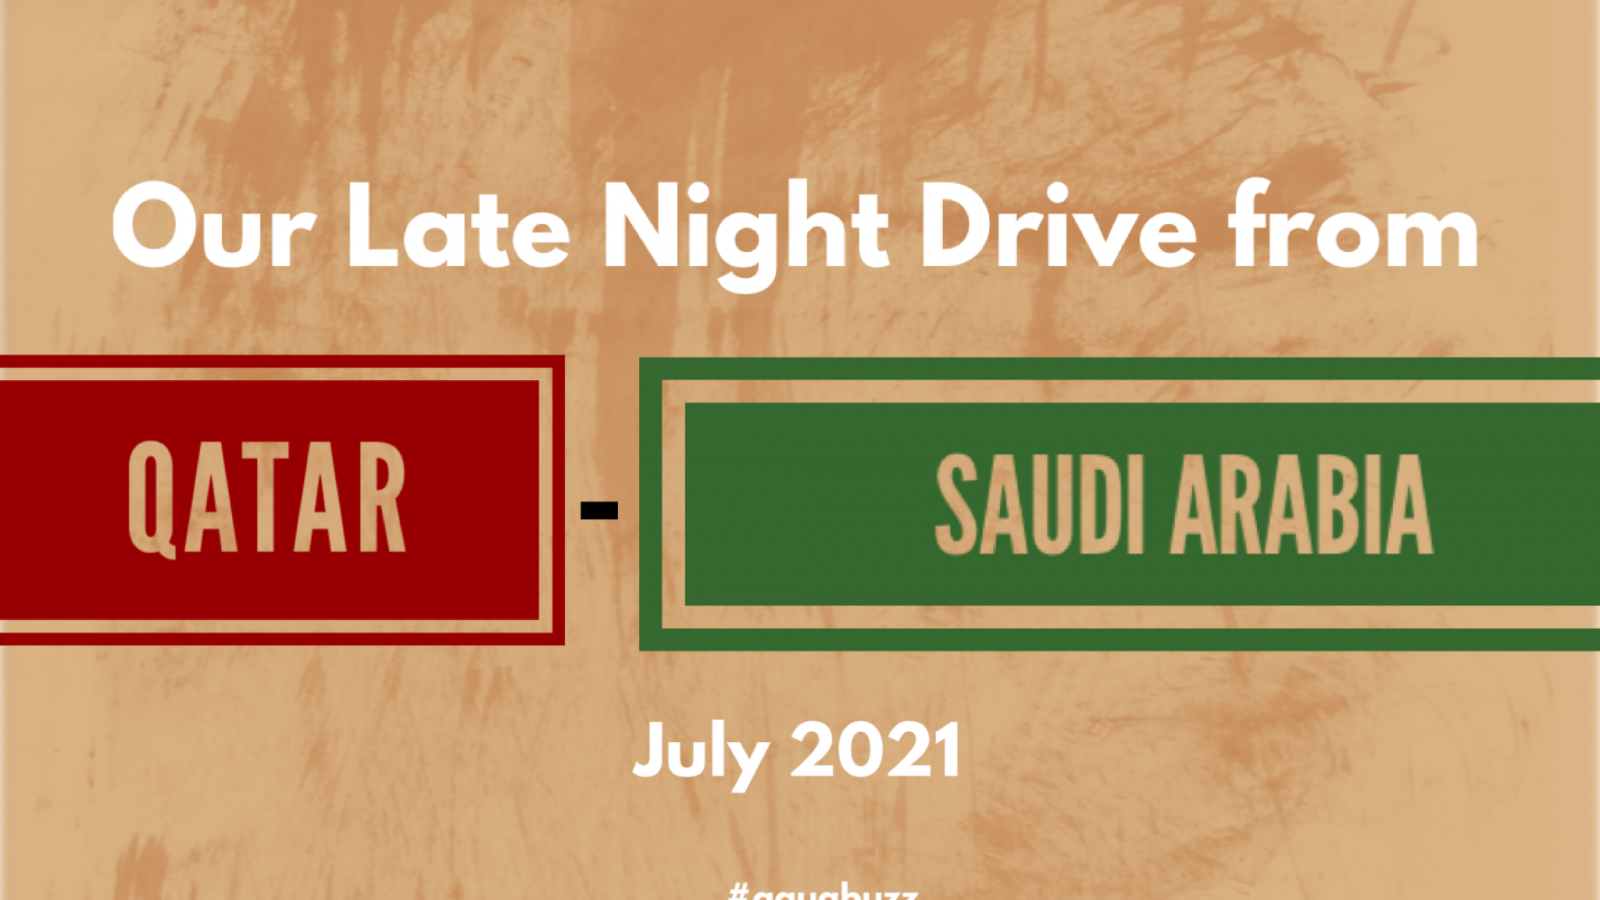 Travelling to Riyadh, Saudi Arabia from Doha by Road- July 2021 update. During the COVID-19 pandemic, post the reopening of land border after the blockade!